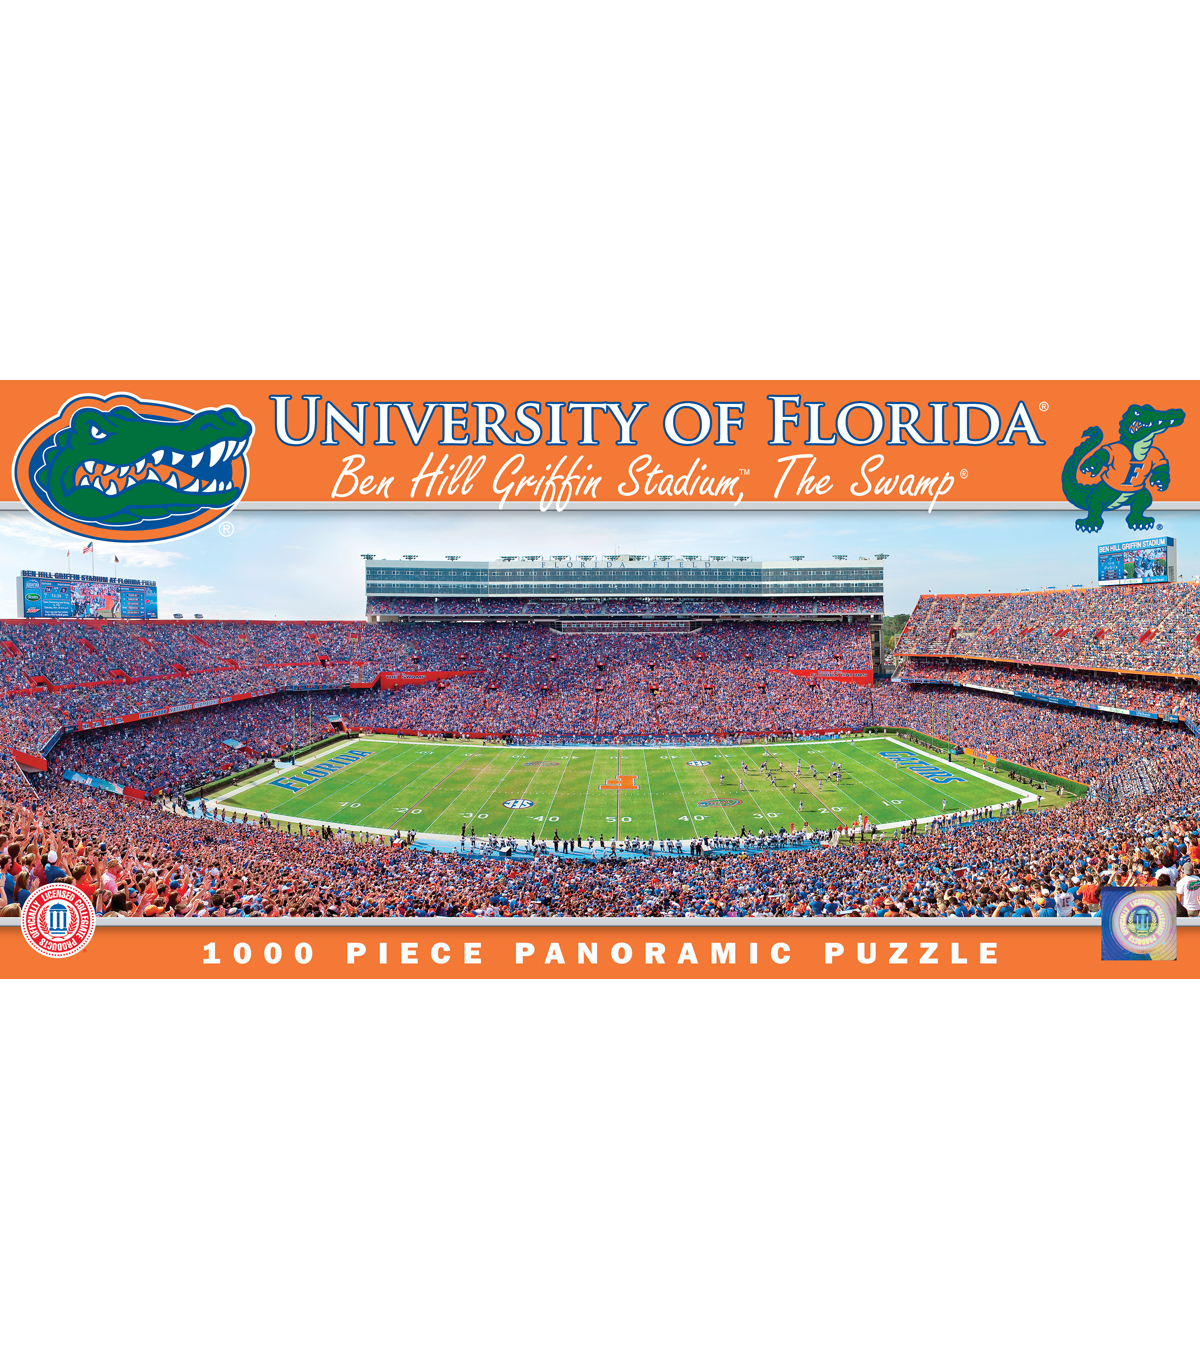 University of Florida Master Pieces  Panoramic Puzzle